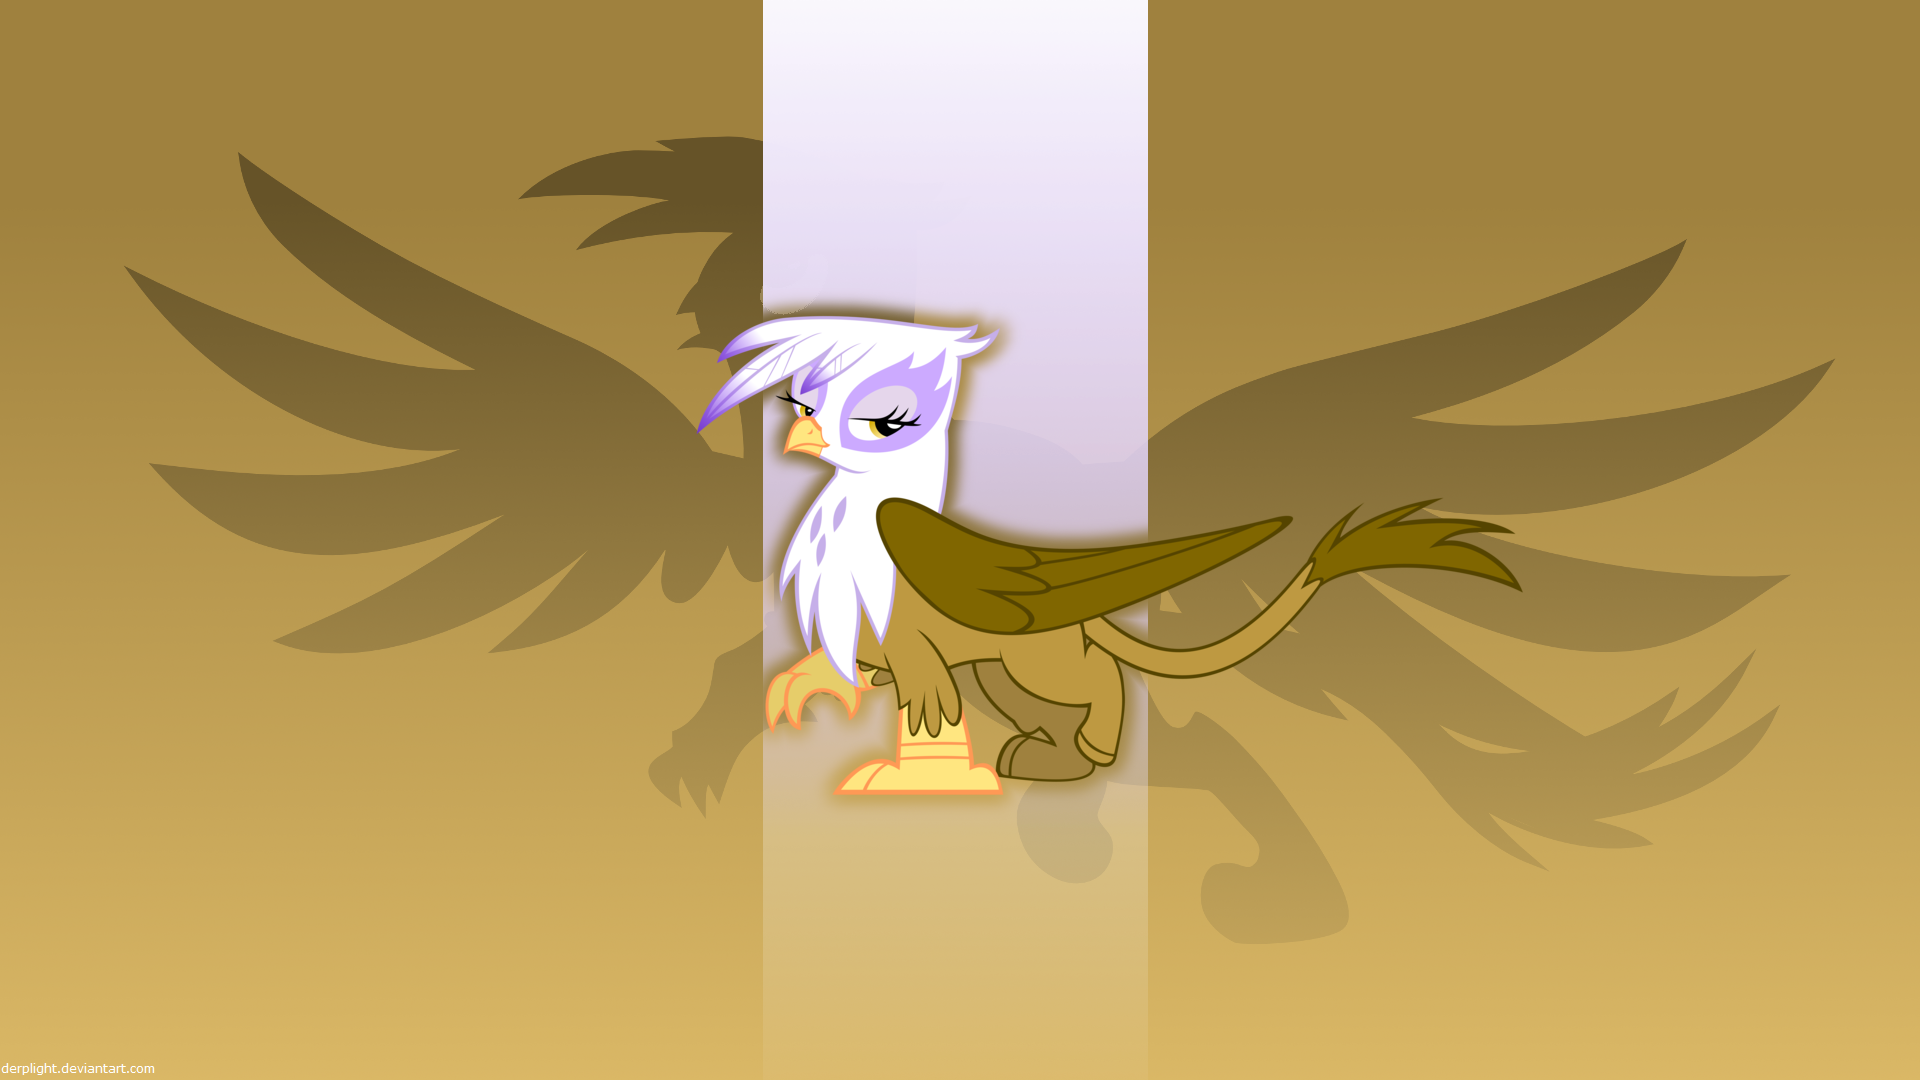 Gilda Wallpaper by AbrotherM, DerpLight and Peachspices